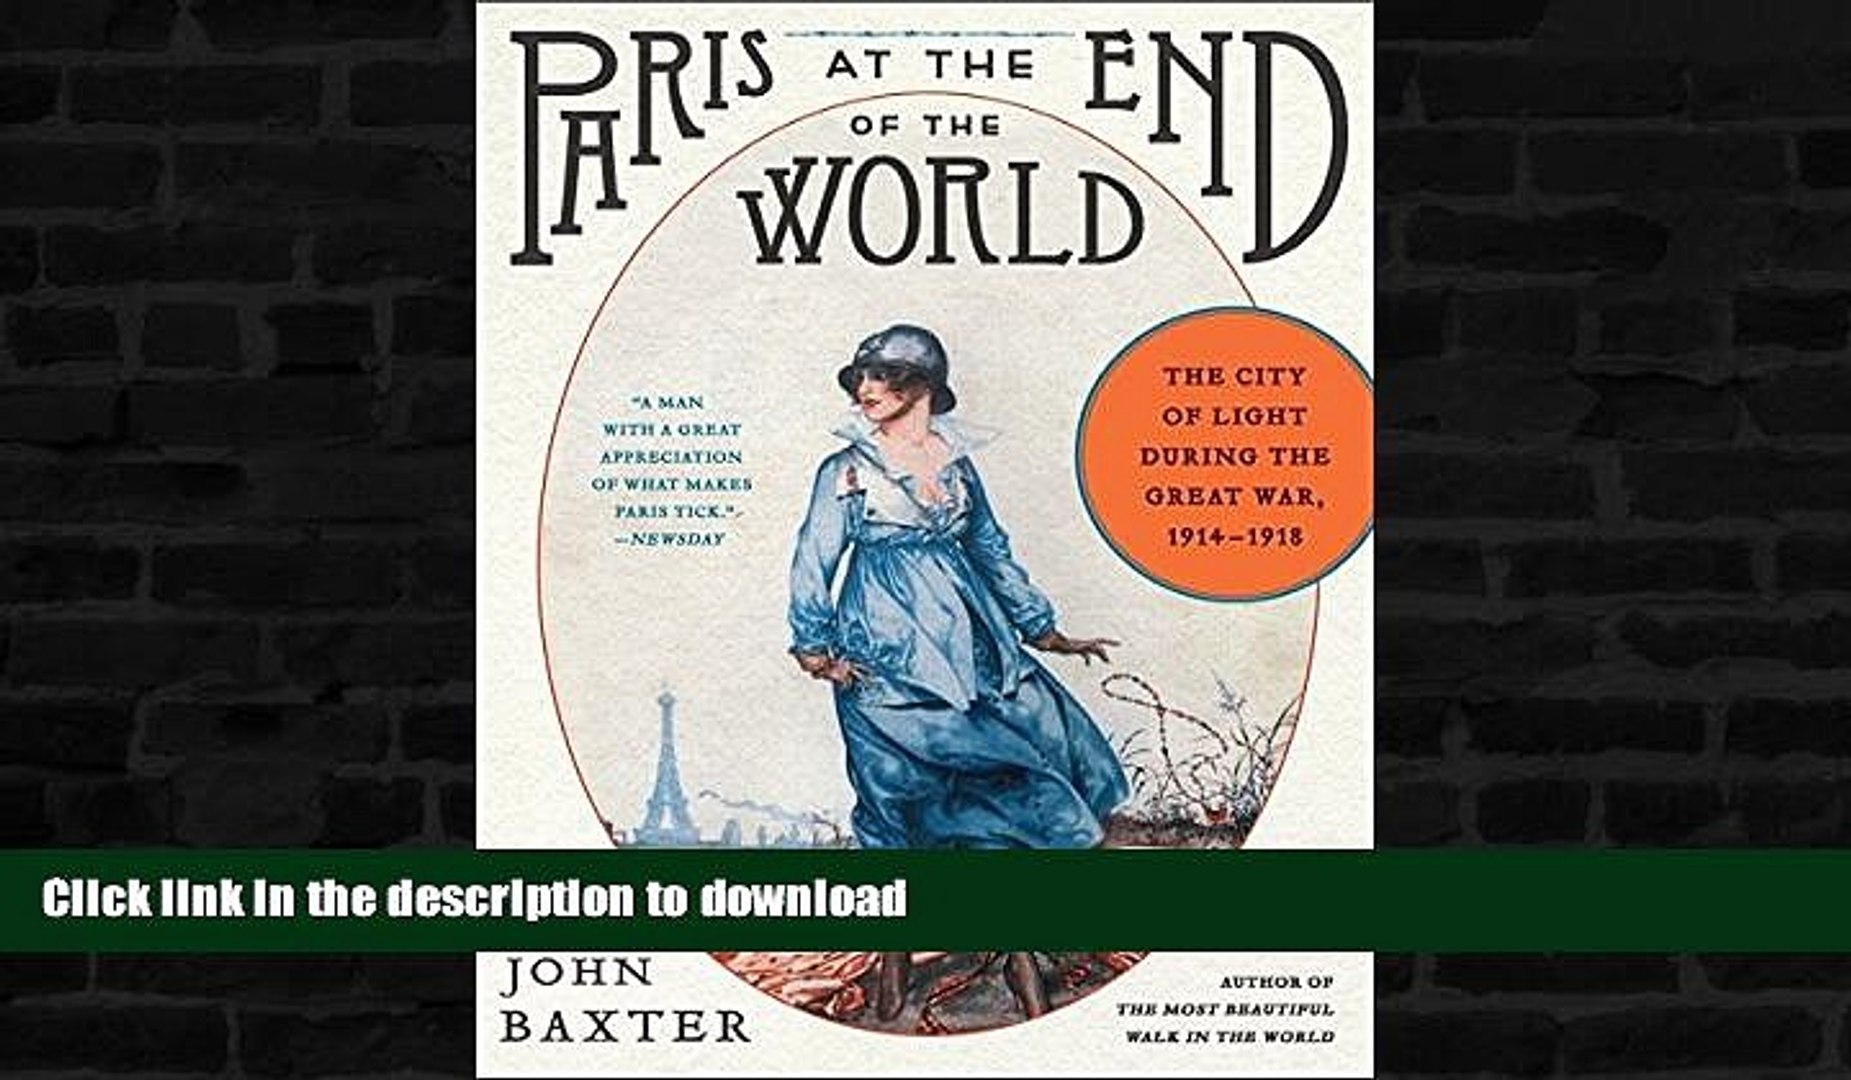 READ  Paris at the End of the World: The City of Light During the Great War, 1914-1918 (P.S.)